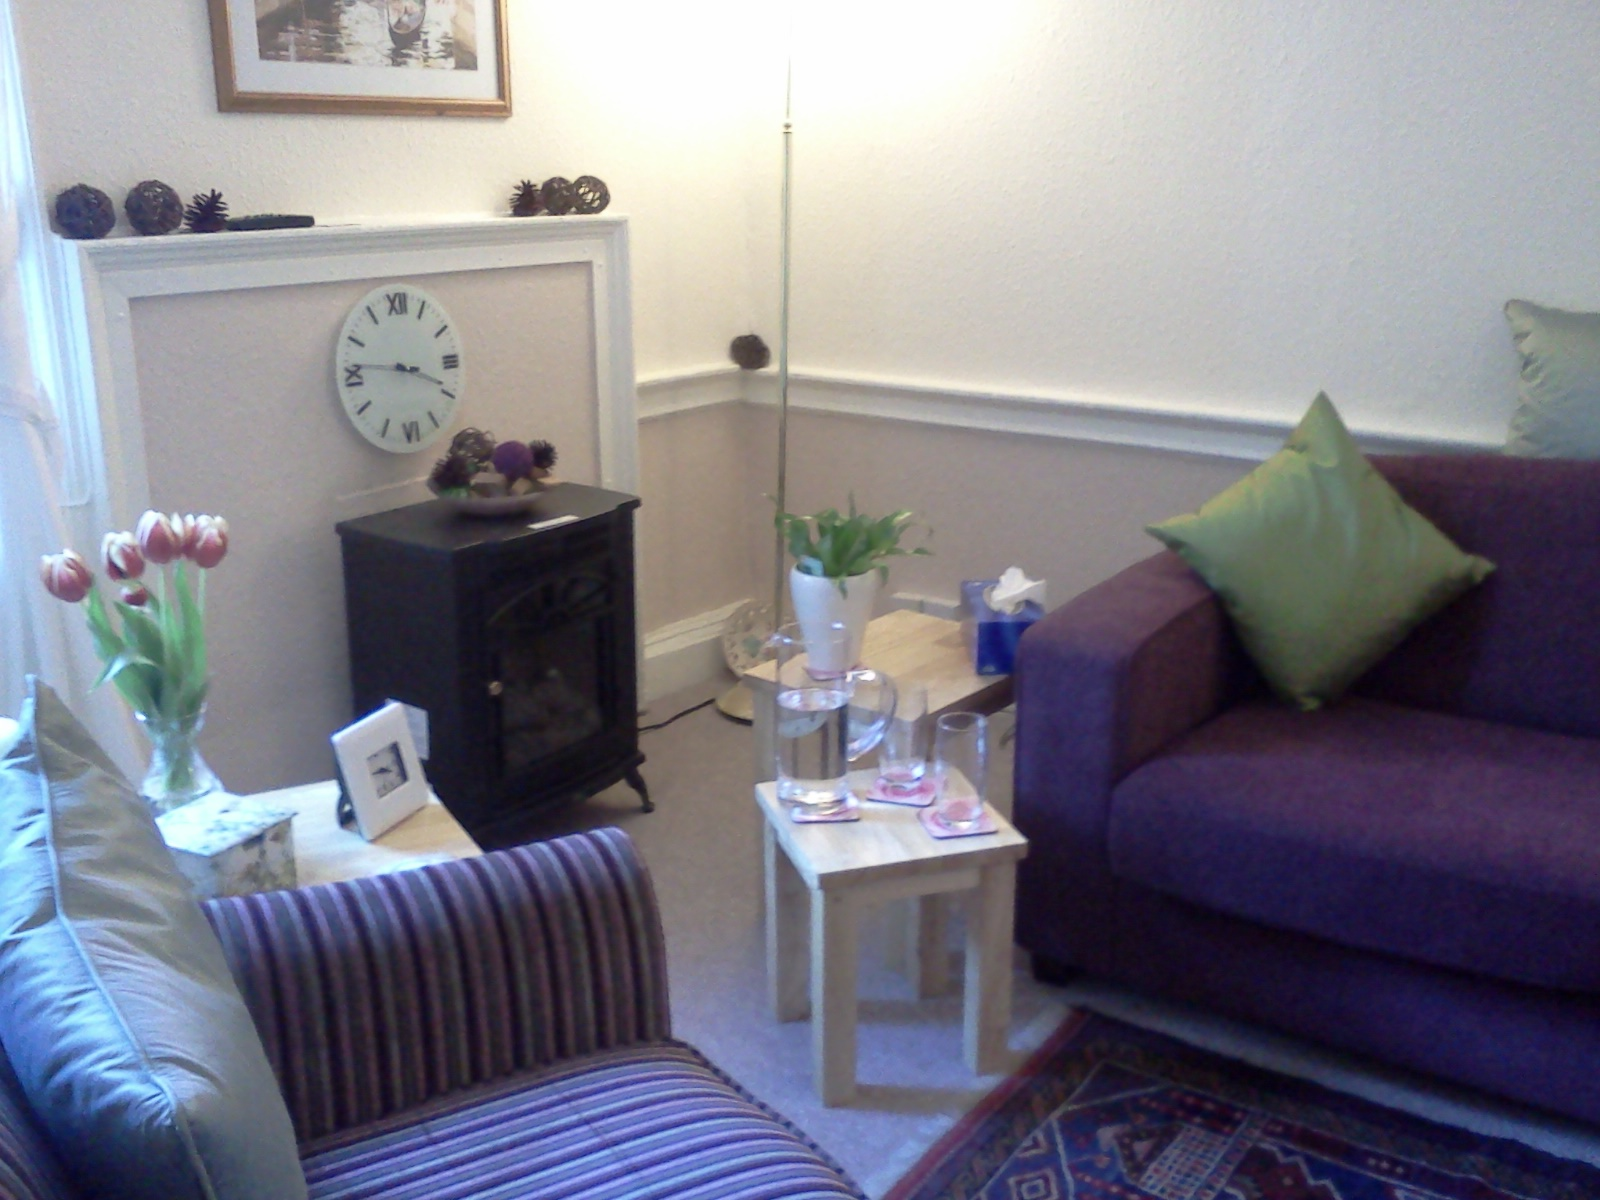 York Place Counselling Room